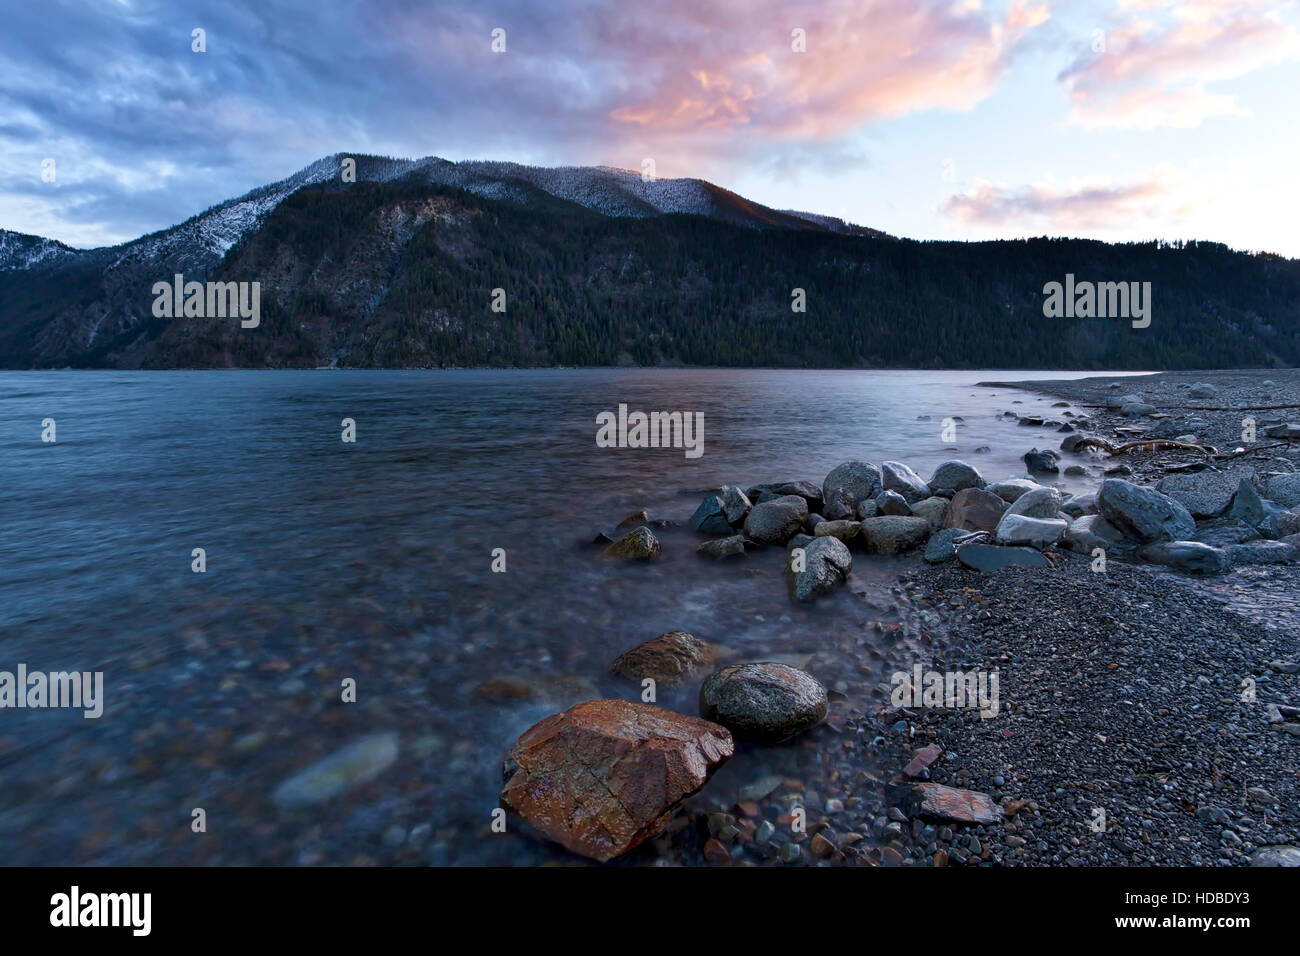 Pend Oreille Lake late in the day. - Stock Image